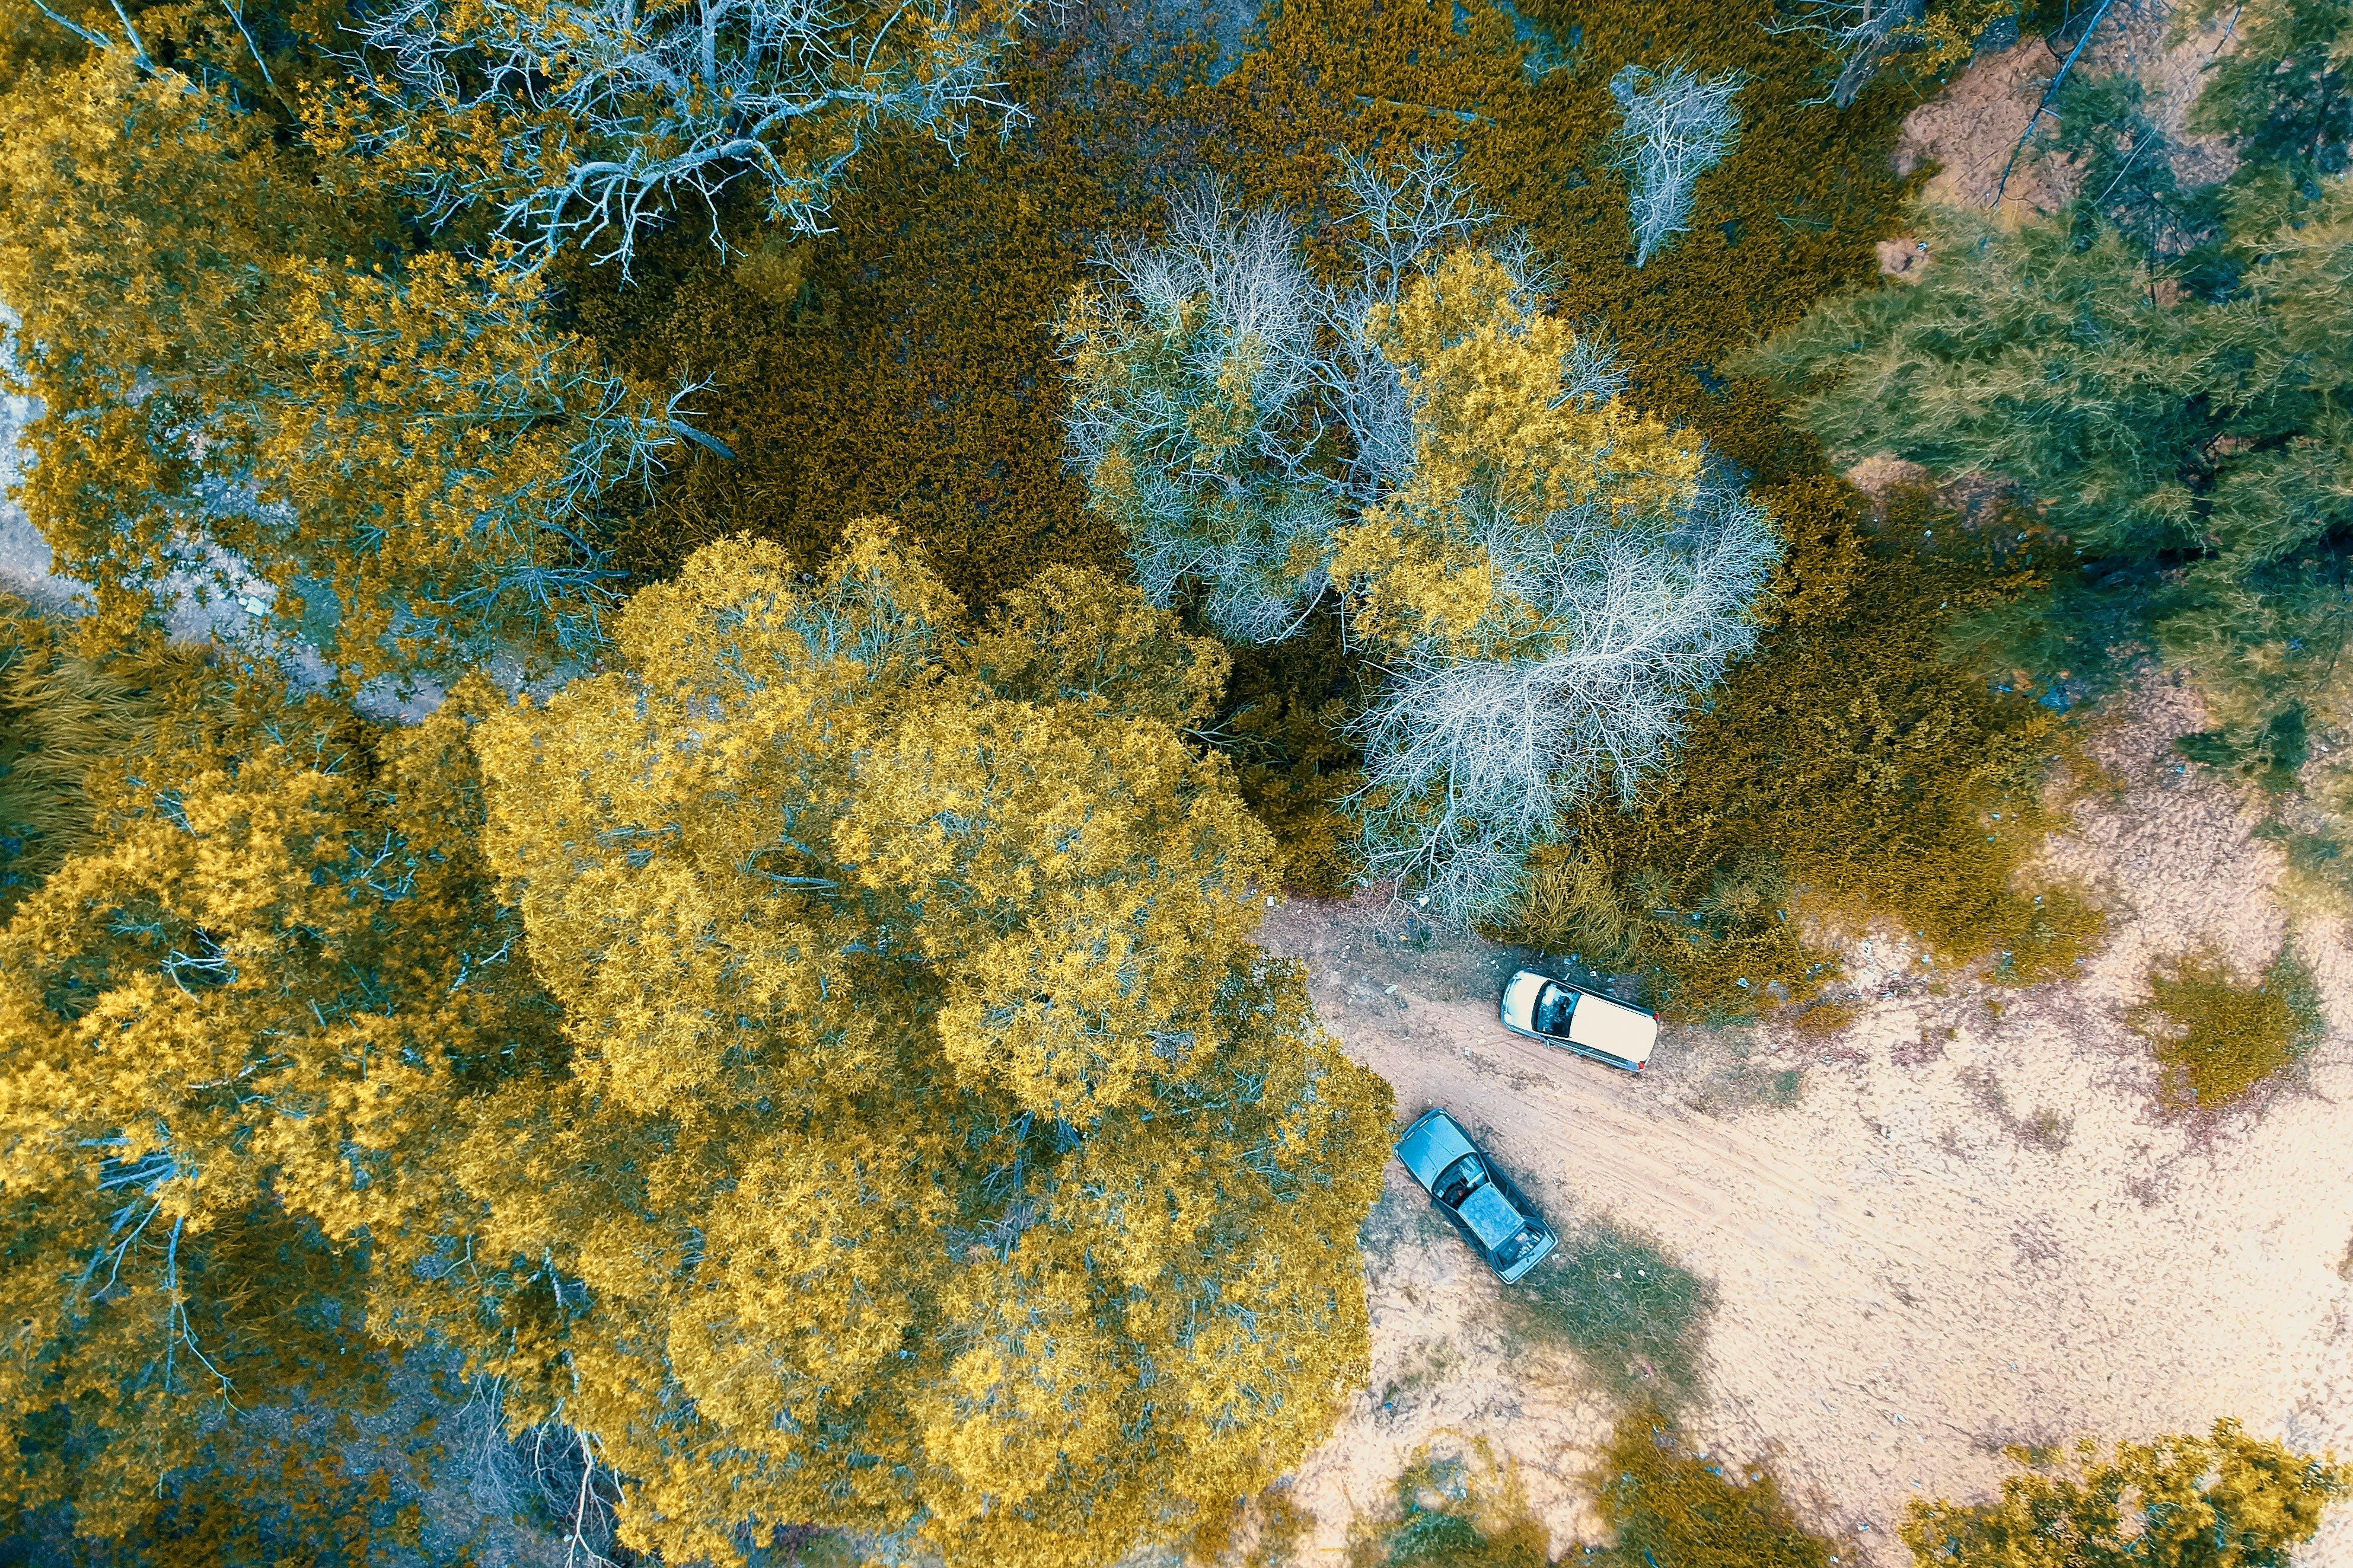 Aerial View Photography of Two Cars Surrounded by Trees